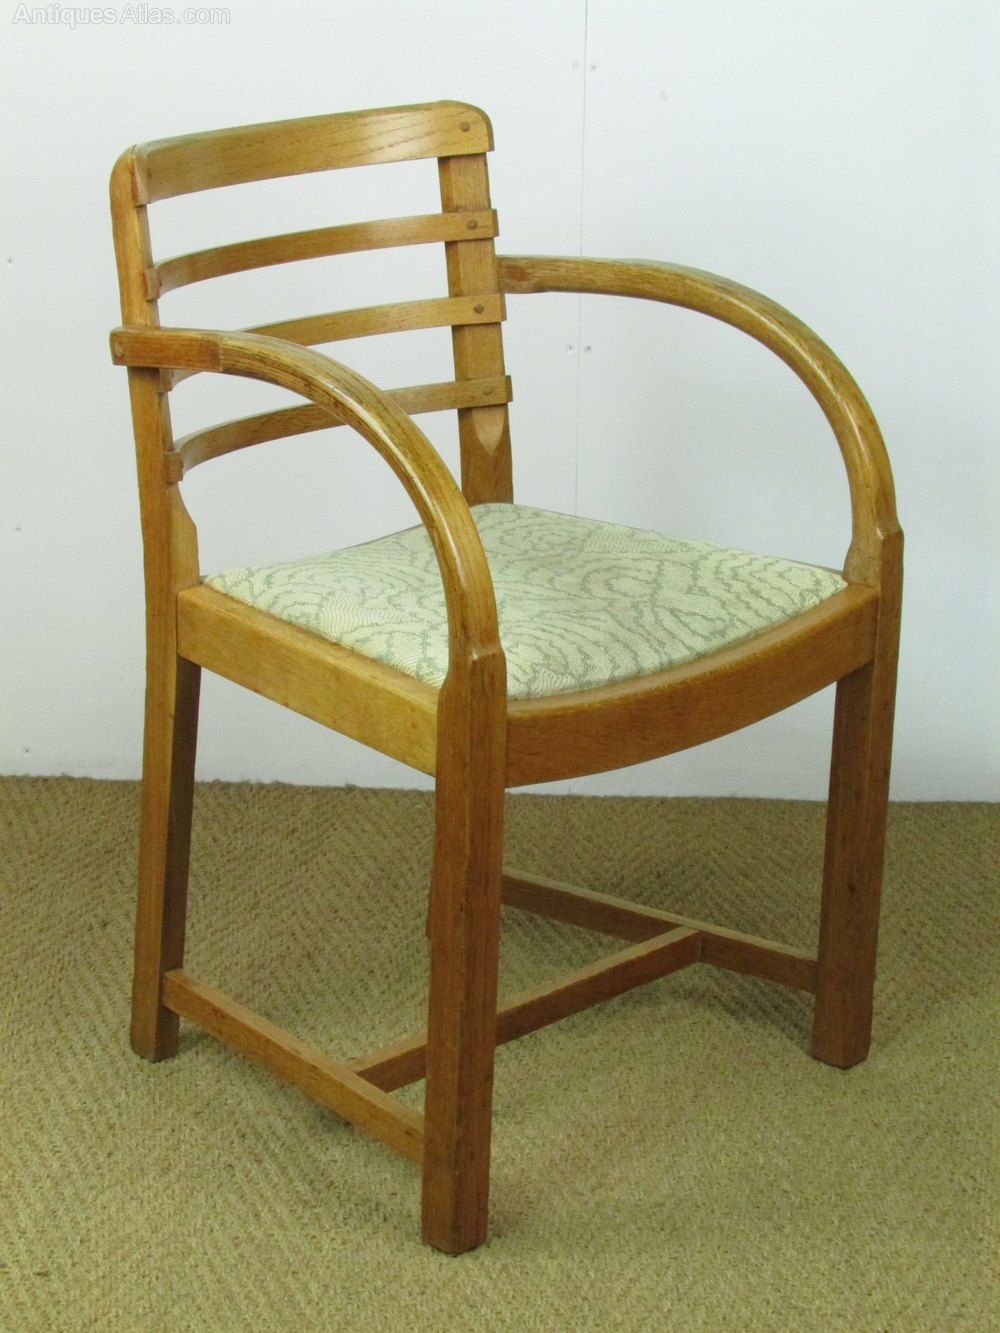 Pair Of Heal's Oak Armchairs - Antiques Atlas